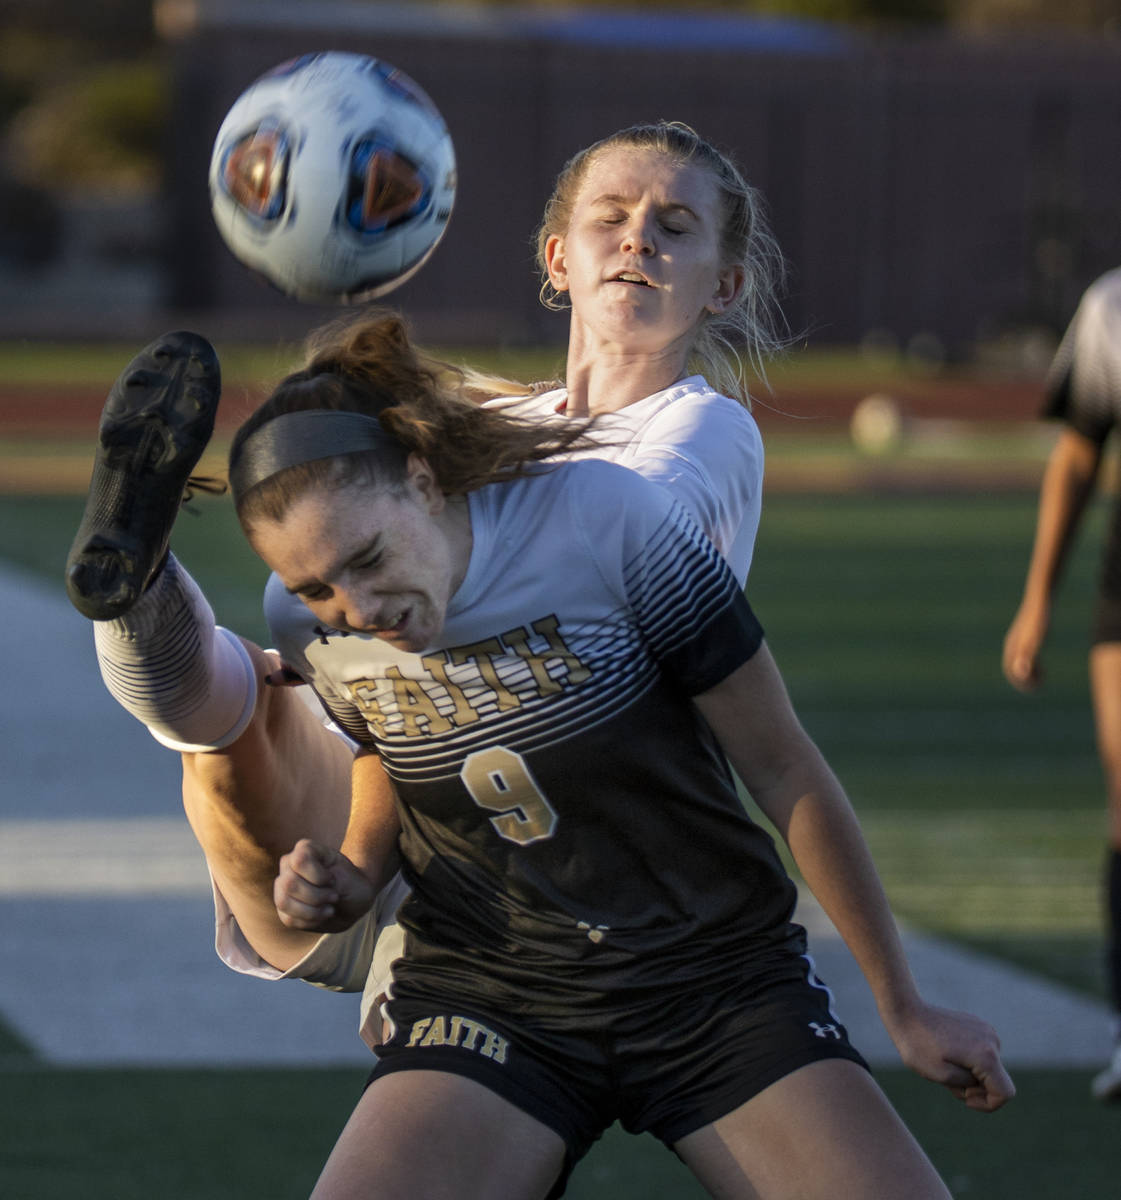 Faith Lutheran's Claire Dalbec (9) has a ball kicked past her head by Bishop Gorman's Michelle ...